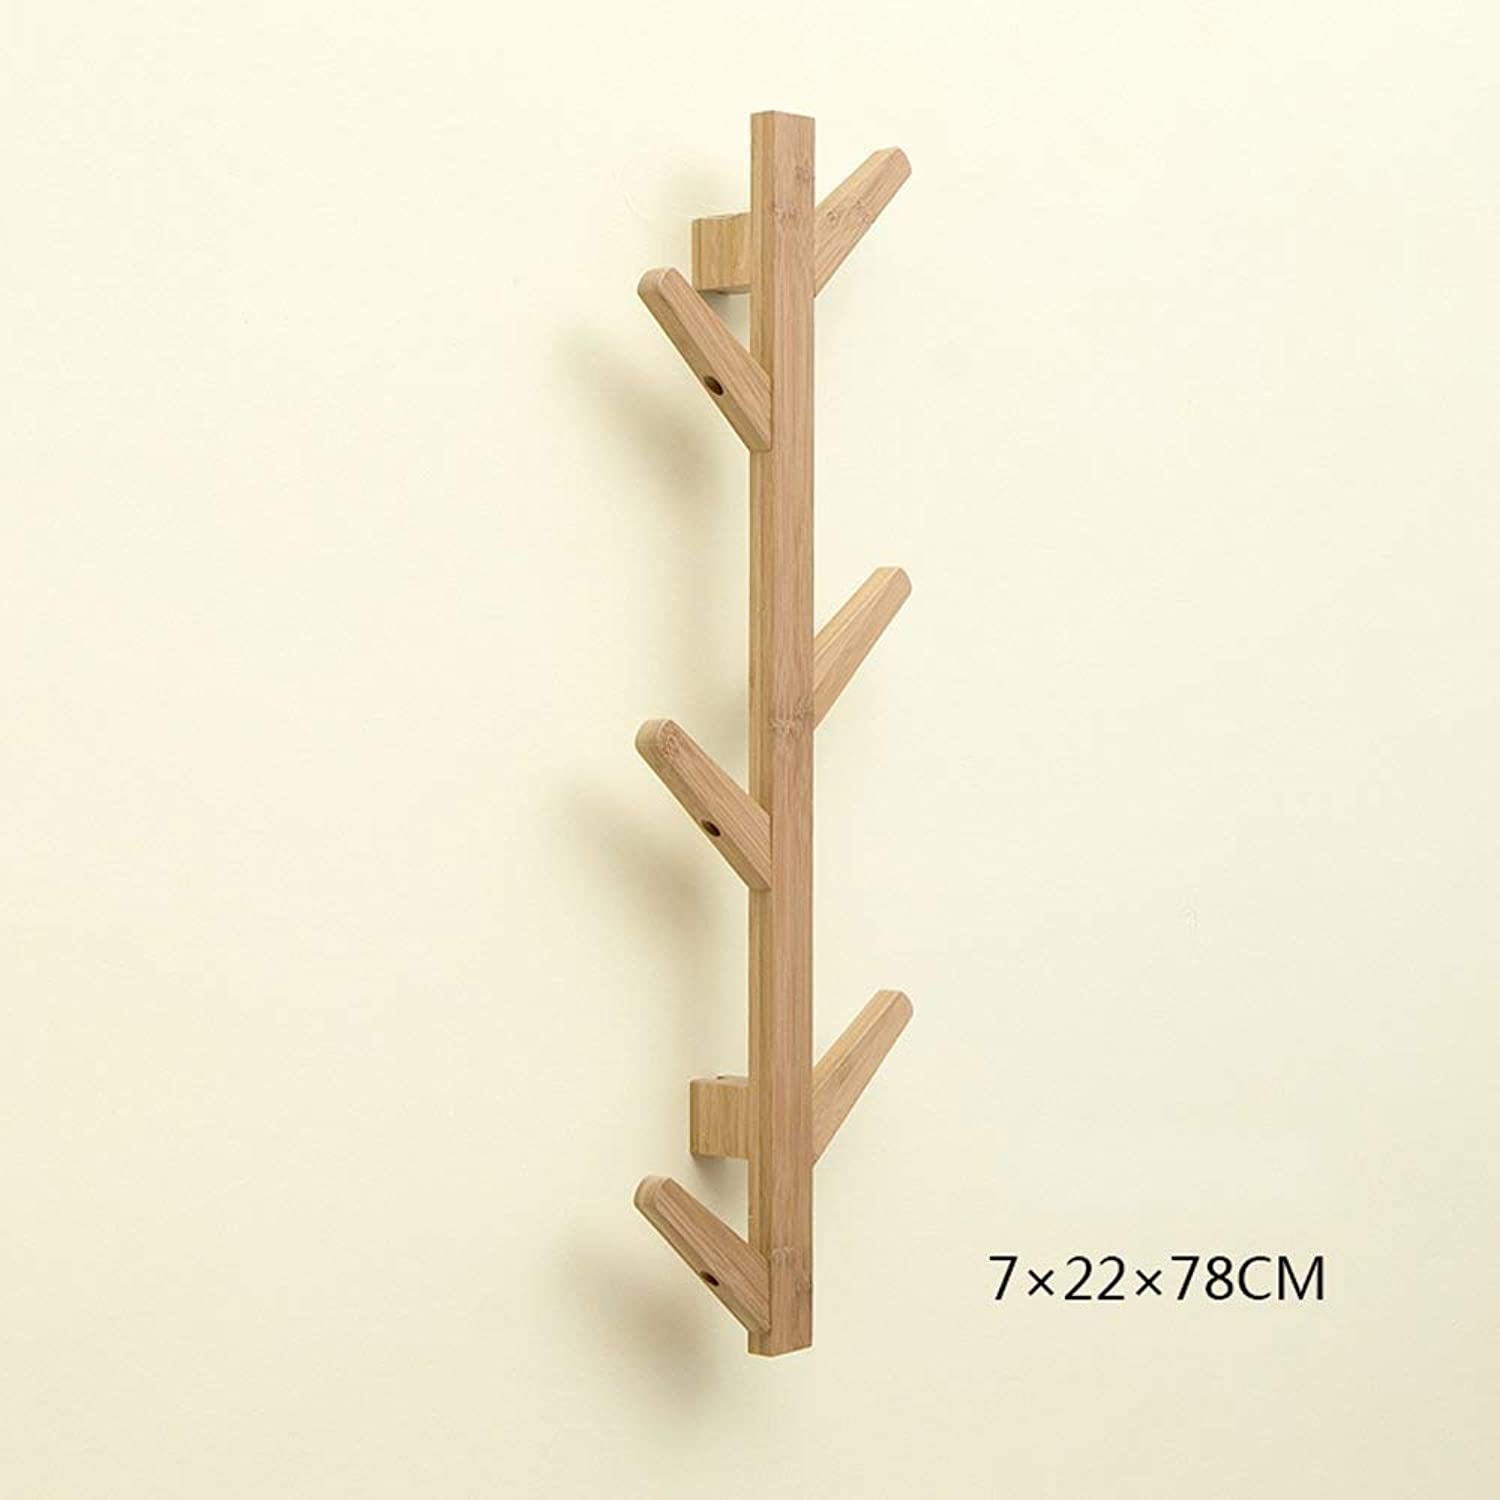 DYR Wall Hanger in Solid Wood Wall Hangers Hangers for Home Decorative Holders Decorative Frame (color  Wood color, Dimensions  78  22cm)